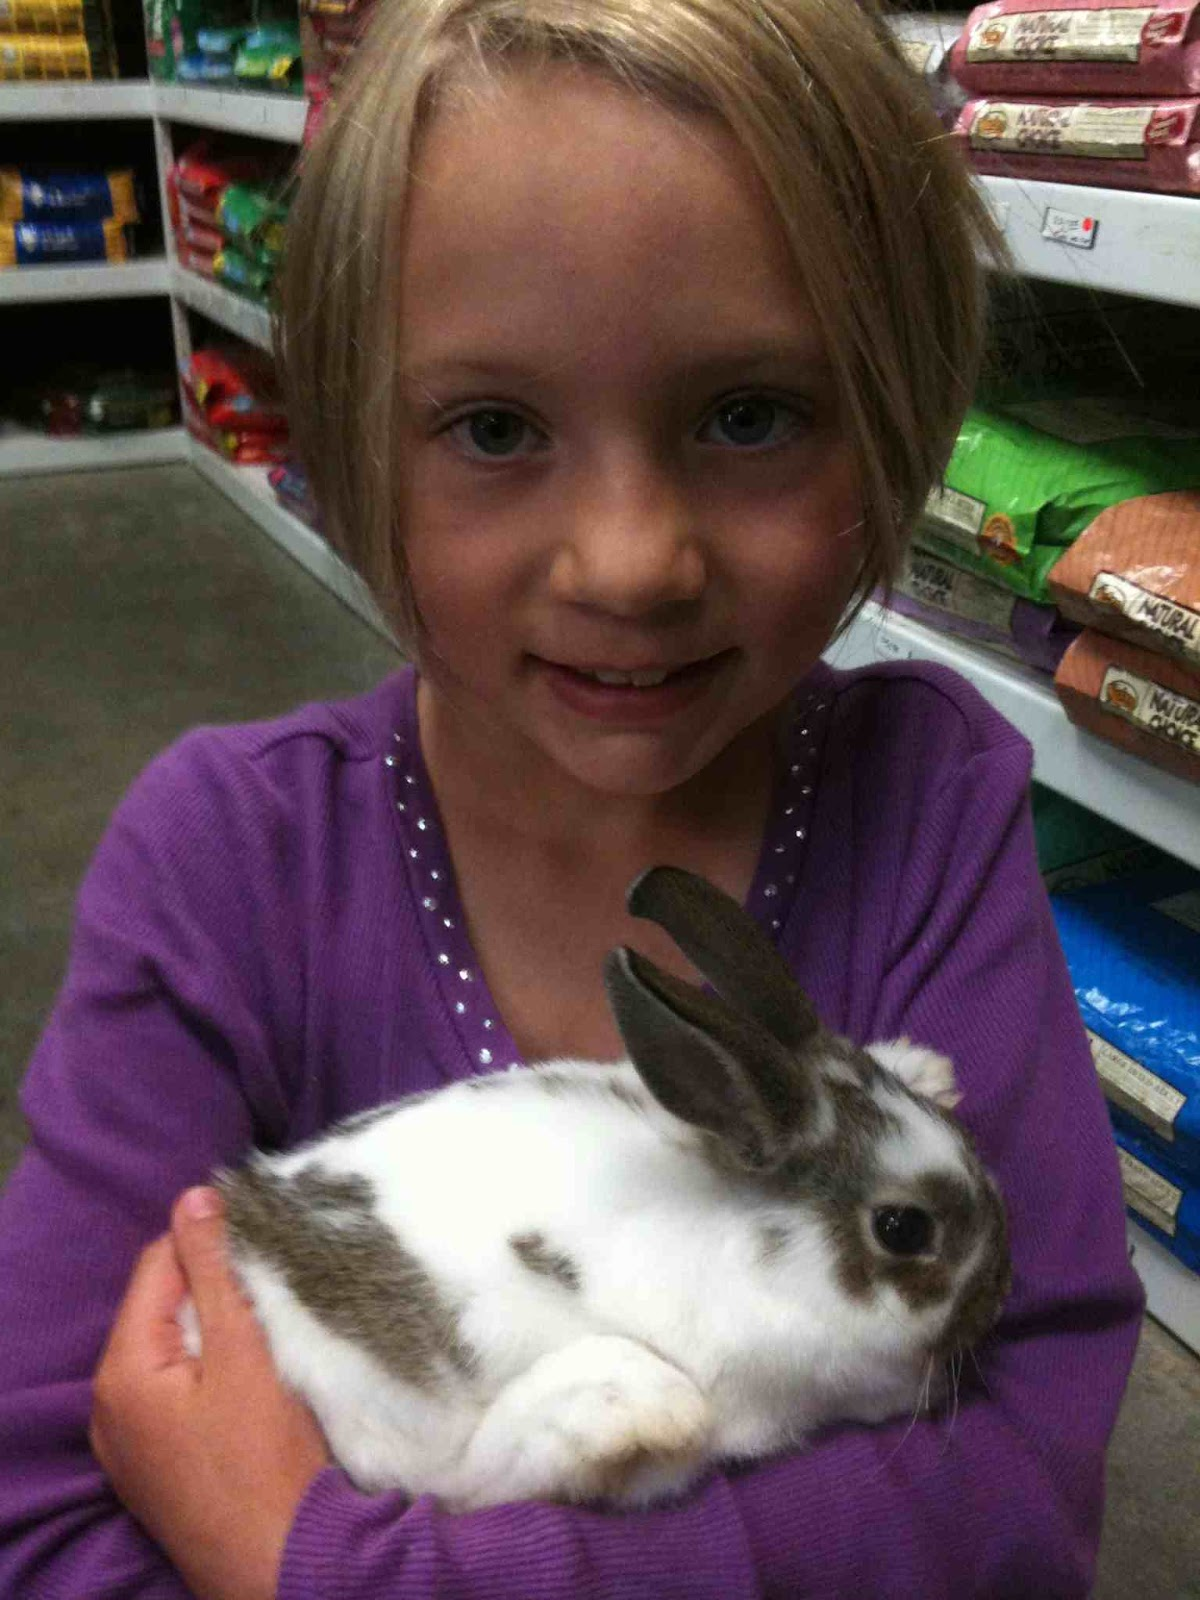 rabbits are good pets a persuasive essay eva varga rabbits are good pets a persuasive essay